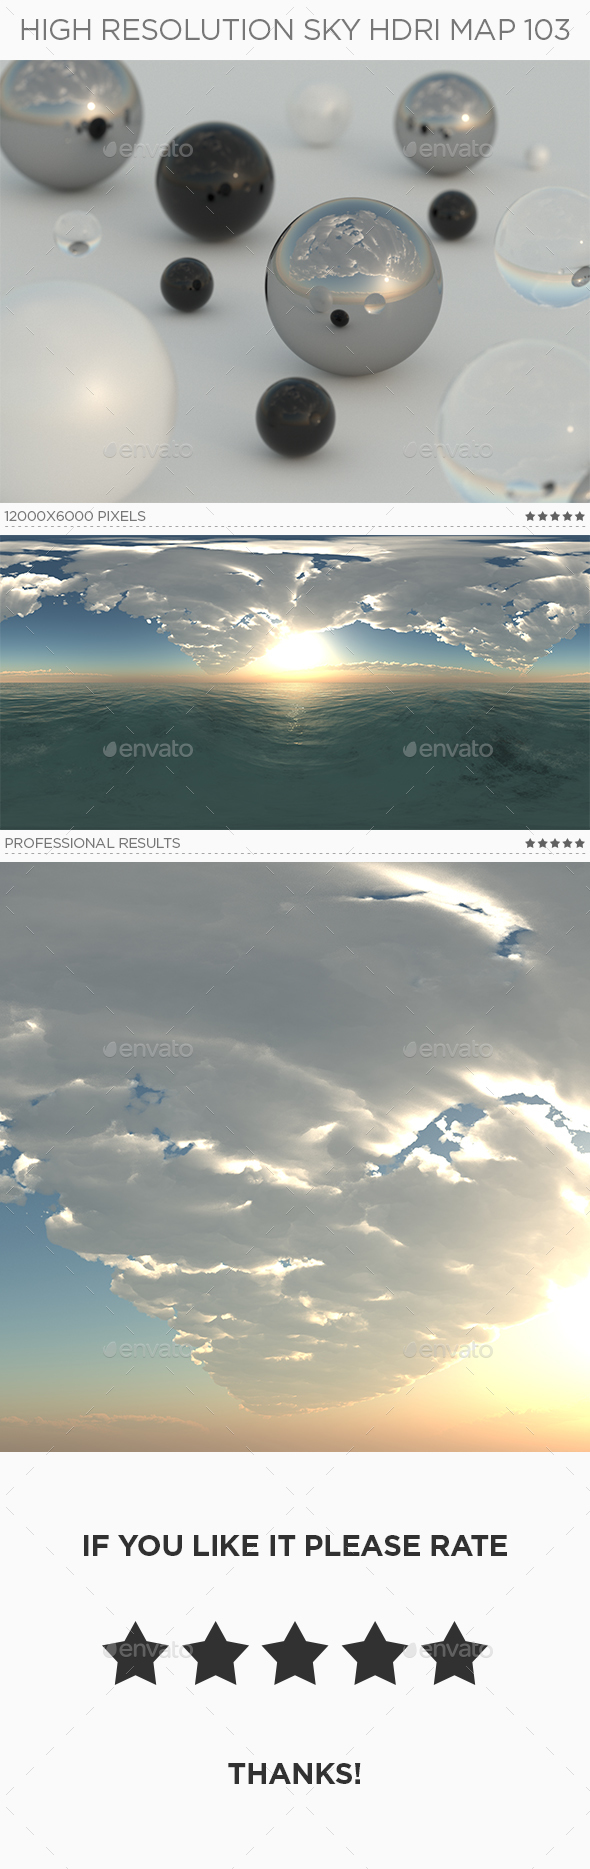 High Resolution Sky HDRi Map 103 - 3DOcean Item for Sale